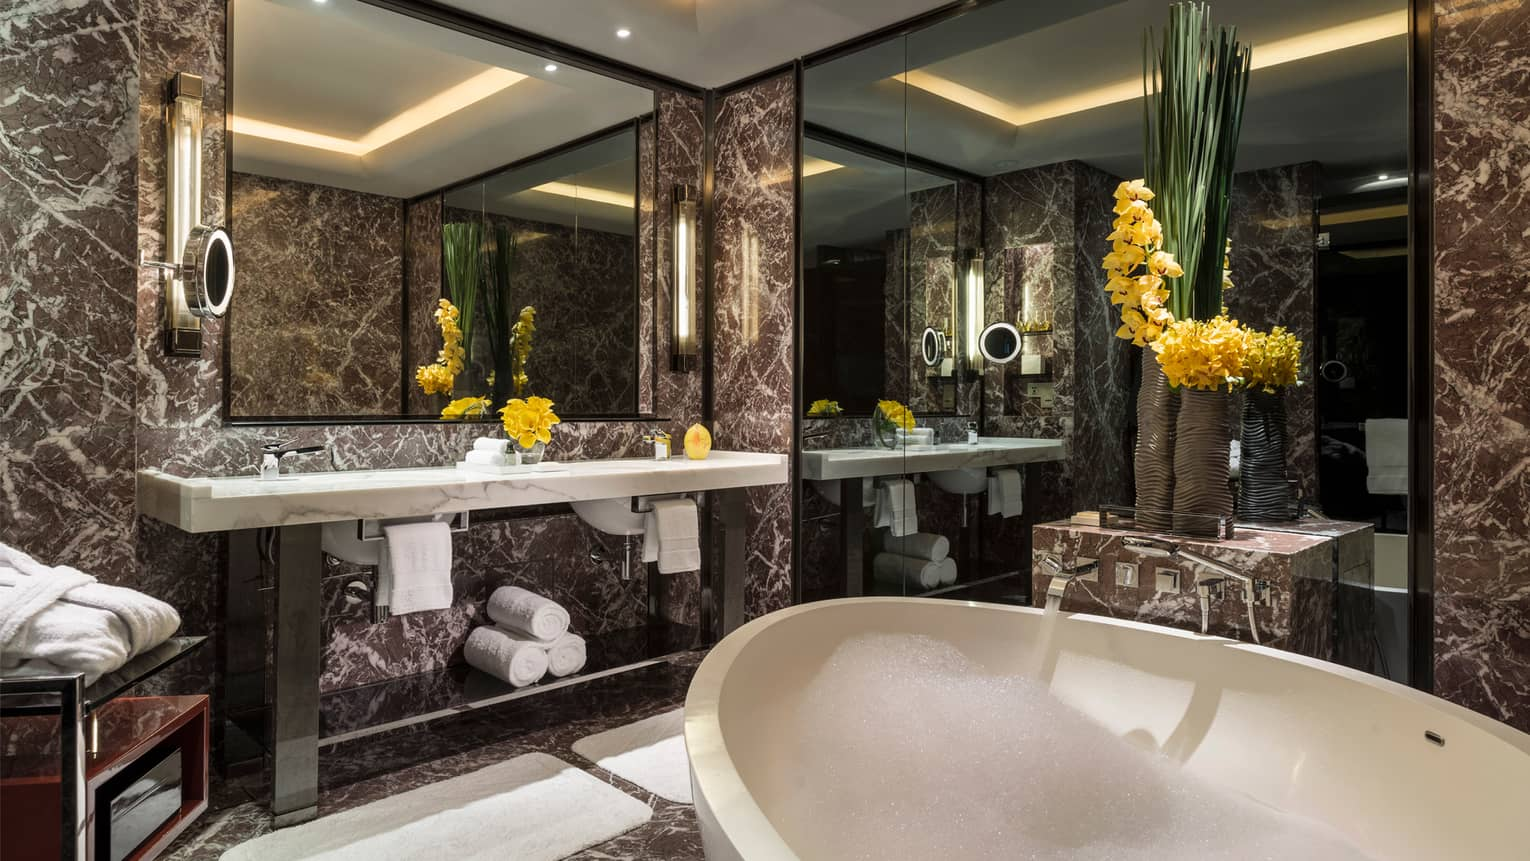 Superior Room River View bathroom full marble bathroom with white deep-soak tub, large vanity